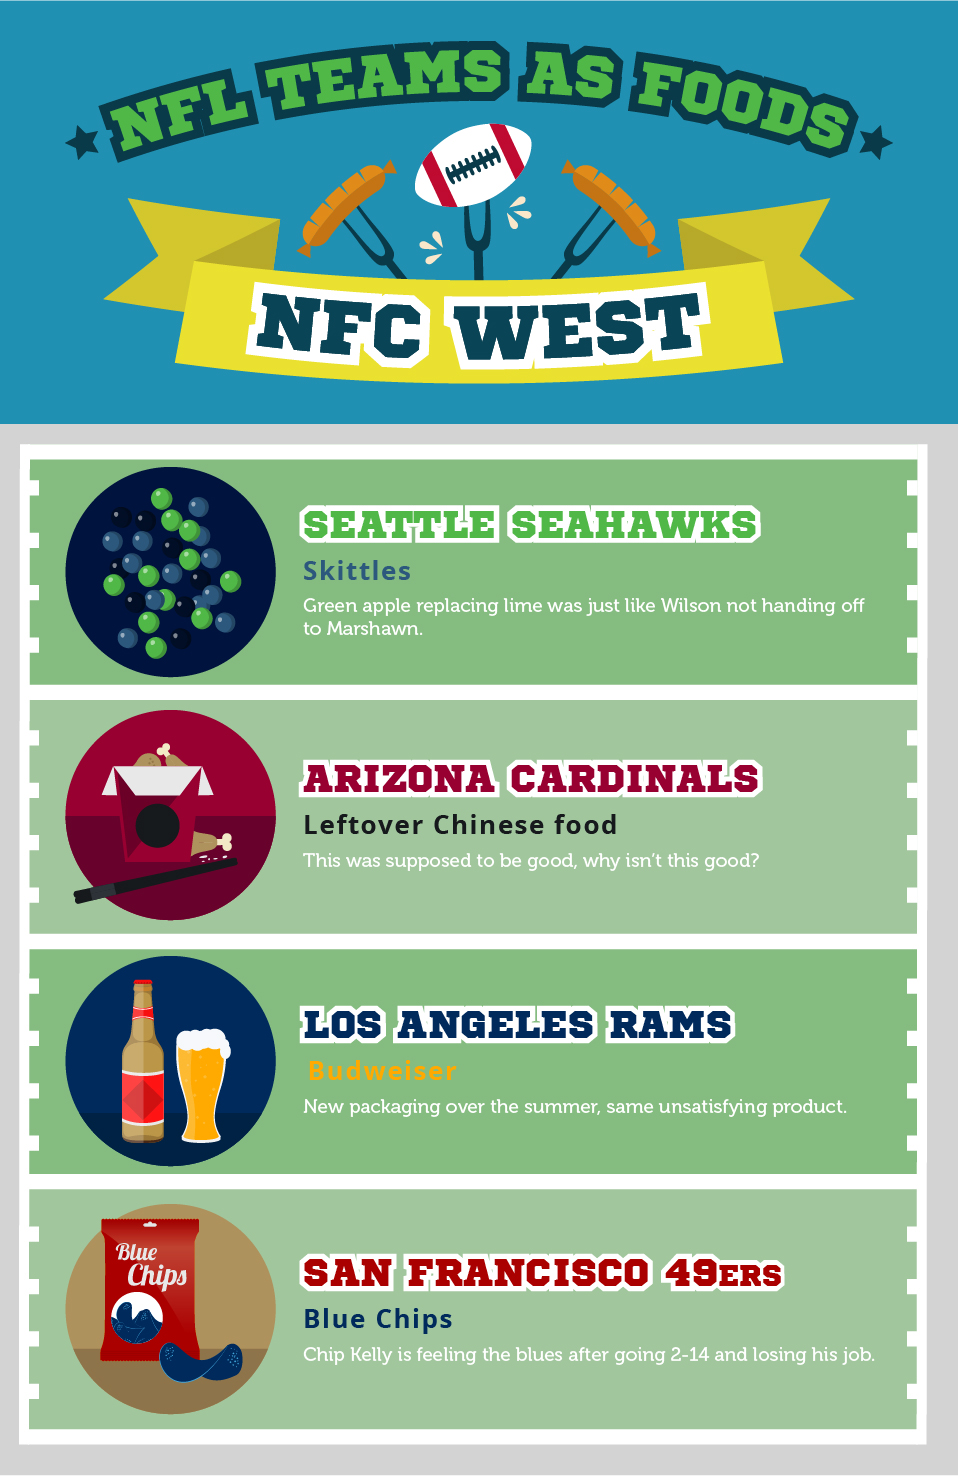 NFL Teams as Food: NFC West